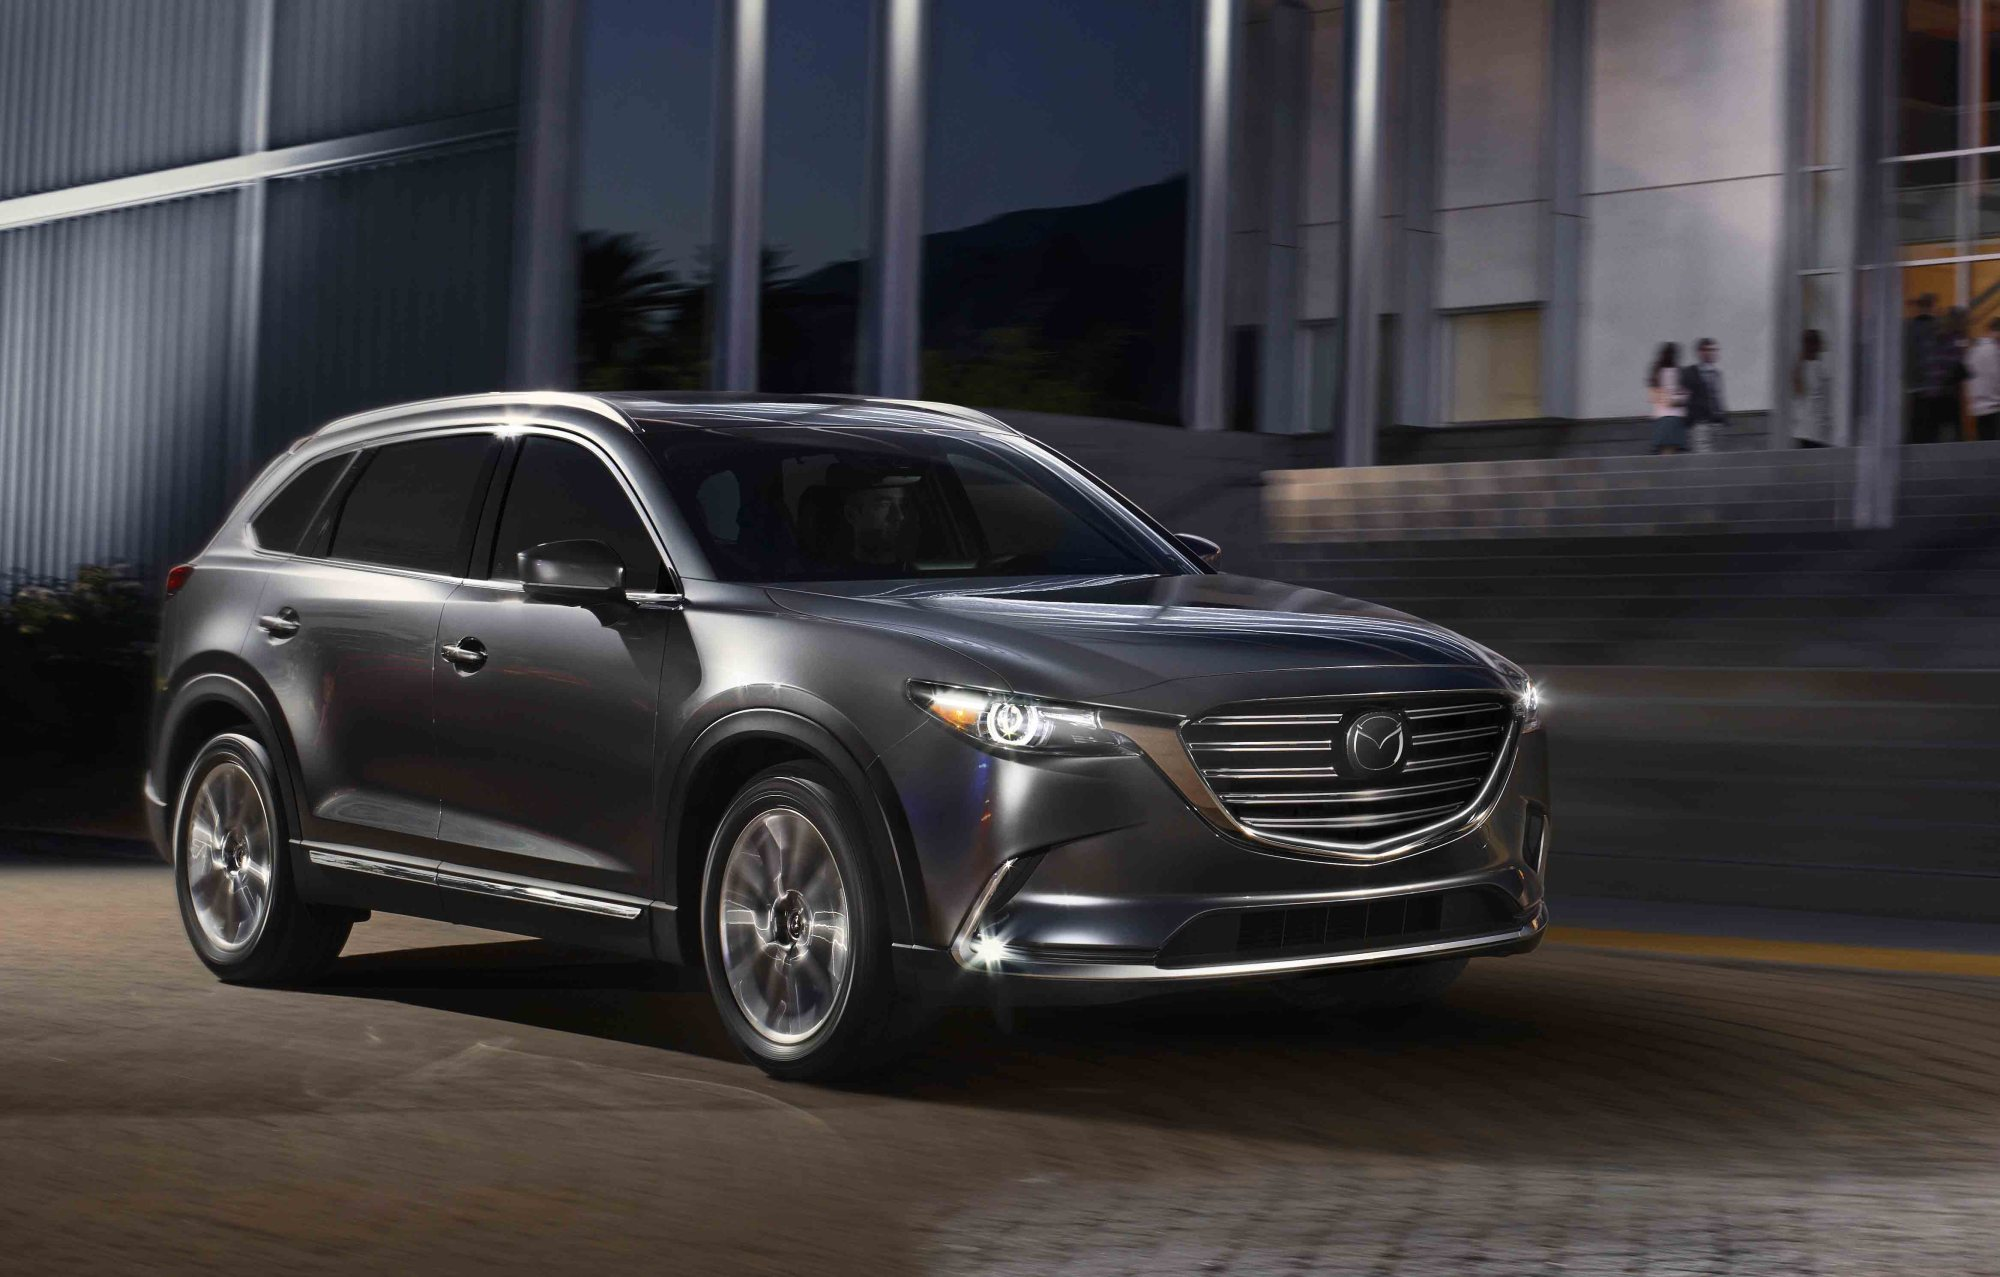 hight resolution of lease a mazda in milwaukee wi